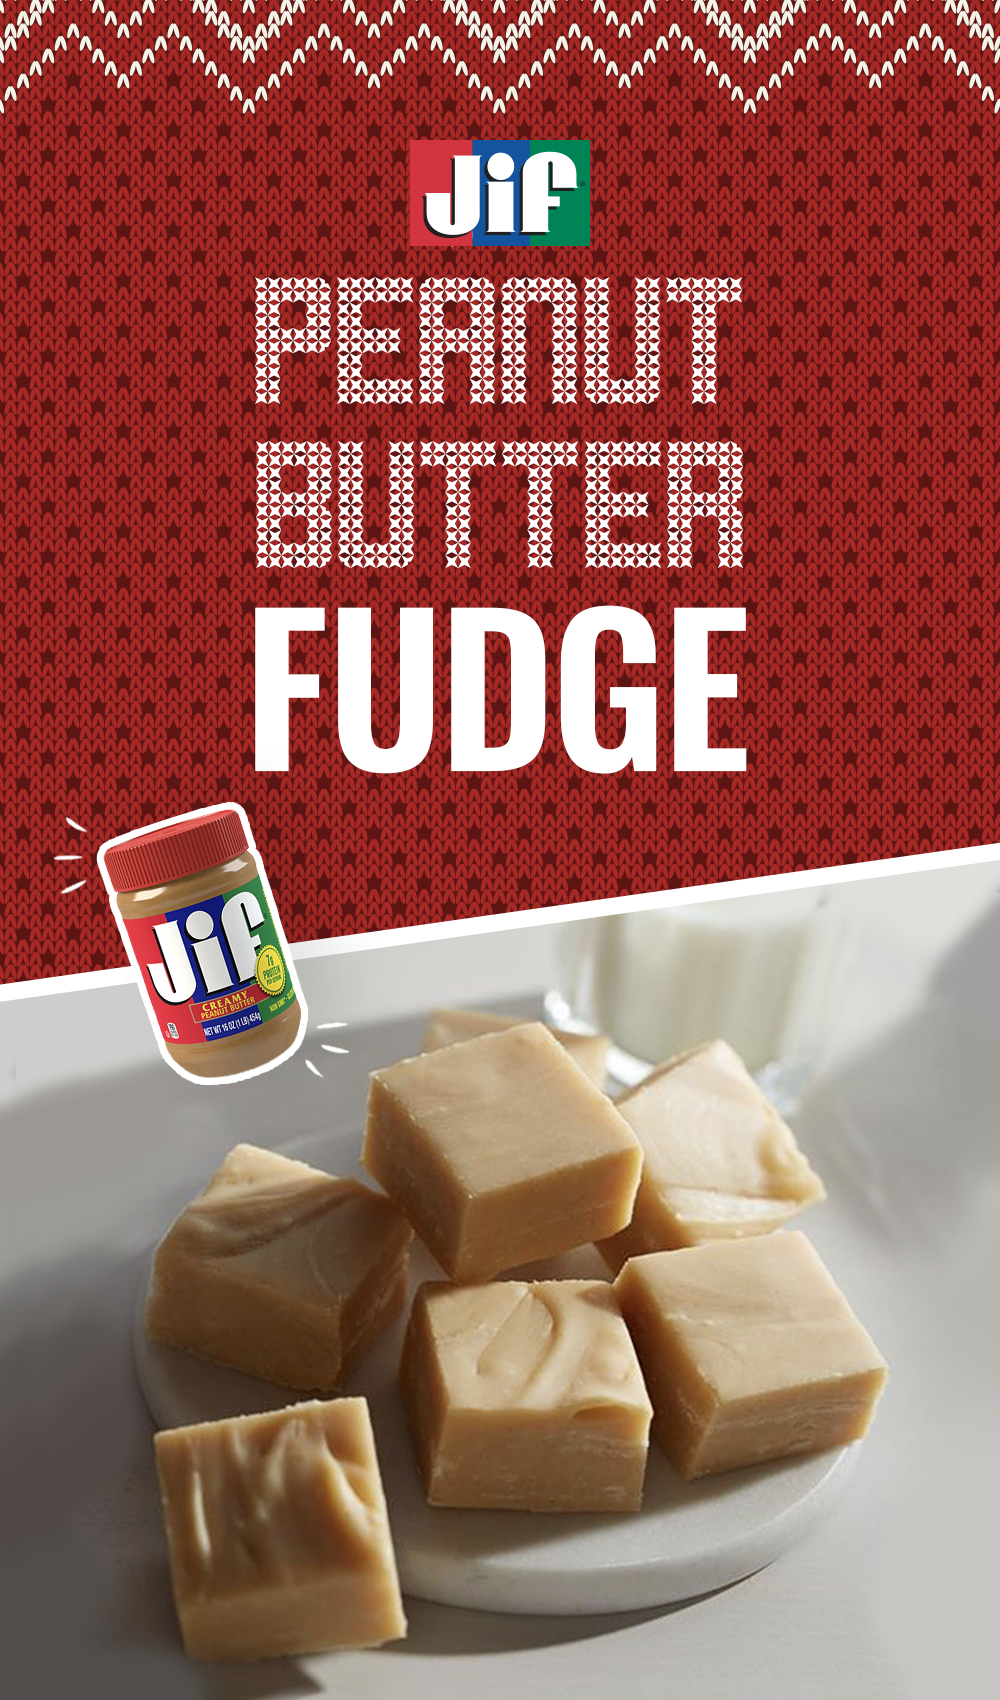 Whip up delicious peanut butter fudge this holiday. It's a seasonal favorite made with creamy Jif Peanut Butter, sugar, butter, evaporated milk, marshmallow creme and vanilla extract. It makes a great gift or addition to your holiday dessert table. It's only 12 minutes to prep and 10 minutes to cook. Get the recipe for this holiday treat now. #peanutbutterfudge